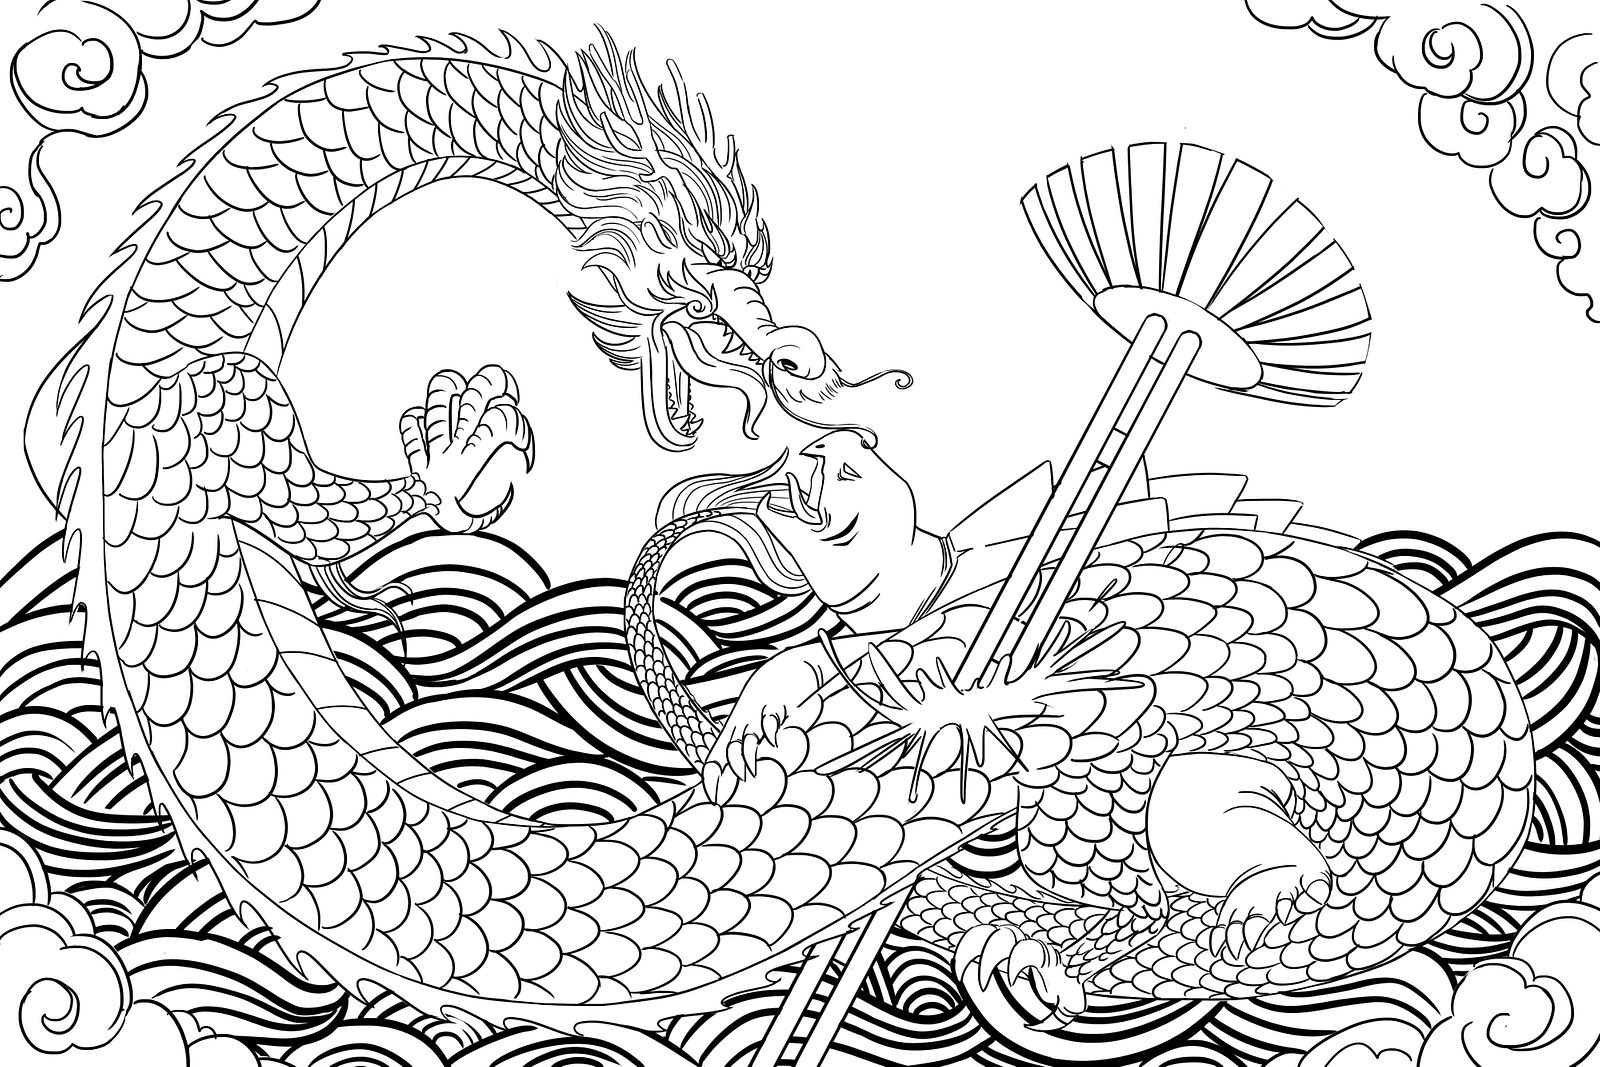 - We Made Some Saigoneer Coloring Templates For You Because Adults